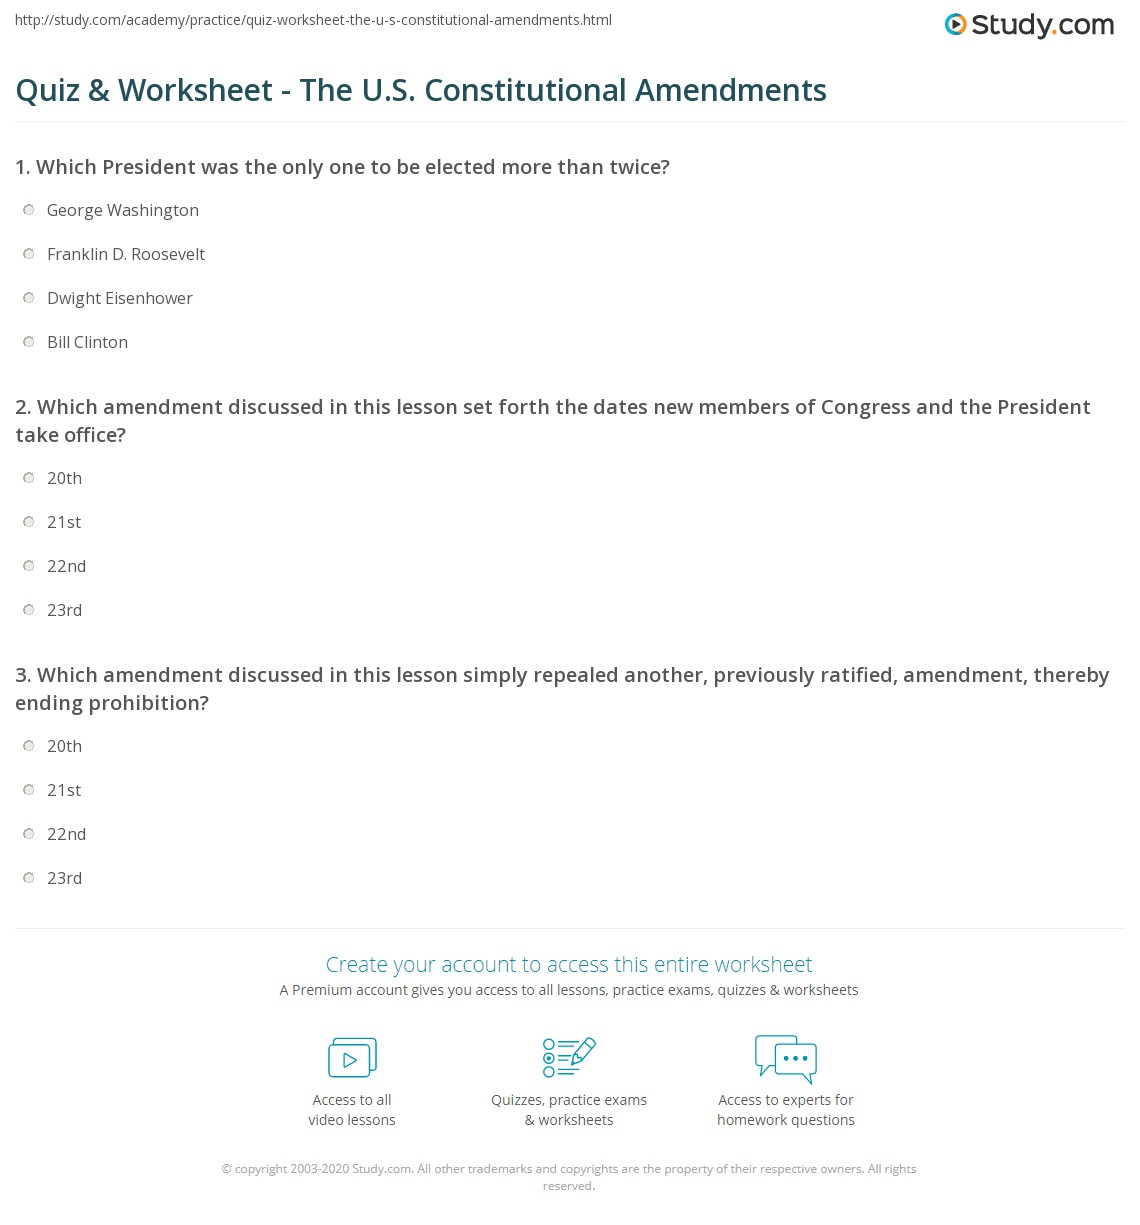 Printables Constitutional Amendments Worksheet quiz worksheet the u s constitutional amendments study com print 20th 21st 22nd 23rd worksheet